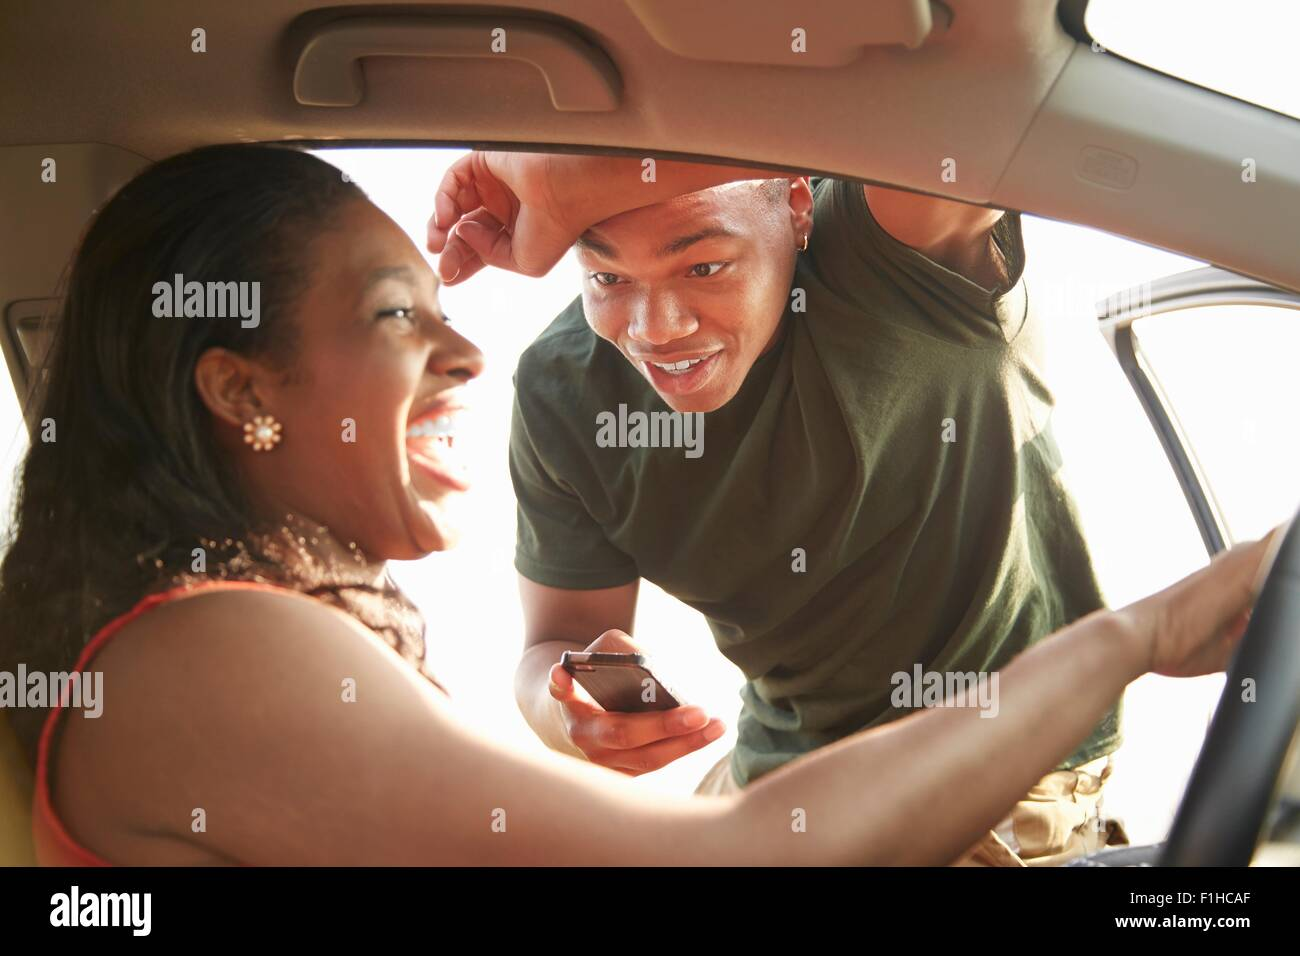 Young man standing at open car door smiling at young woman - Stock Image